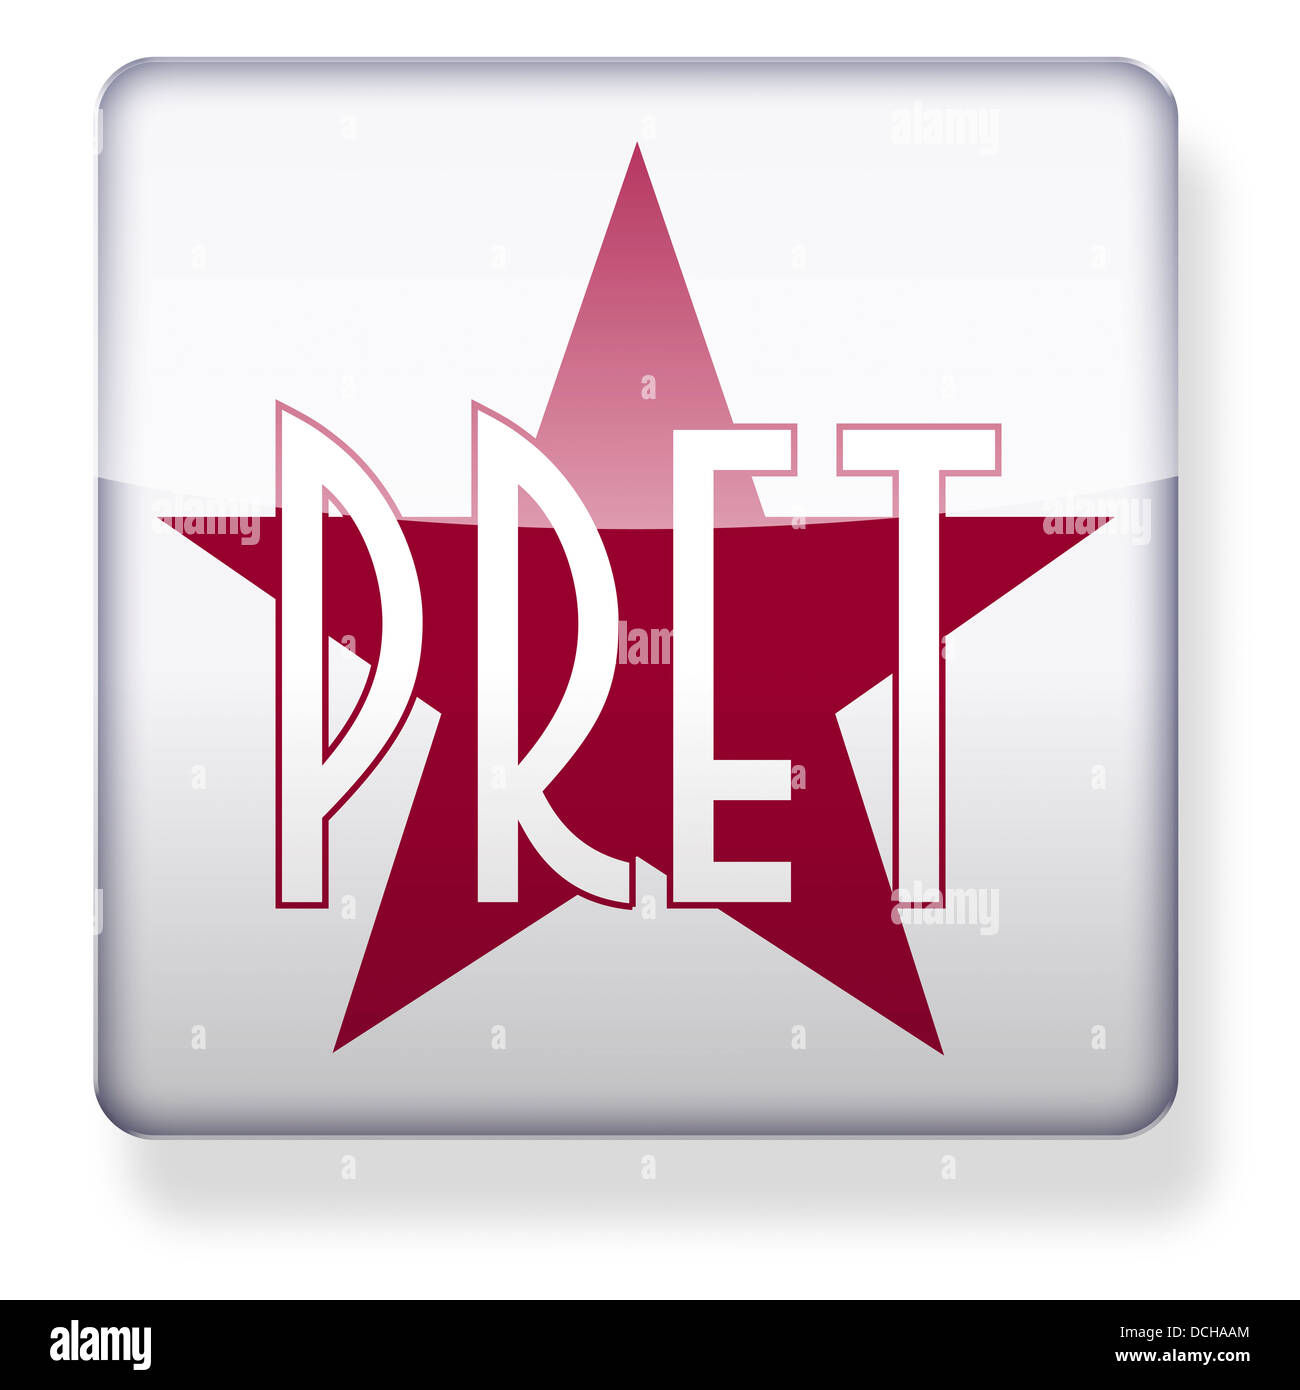 Pret a Manger logo as an app icon. Clipping path included. Stock Photo